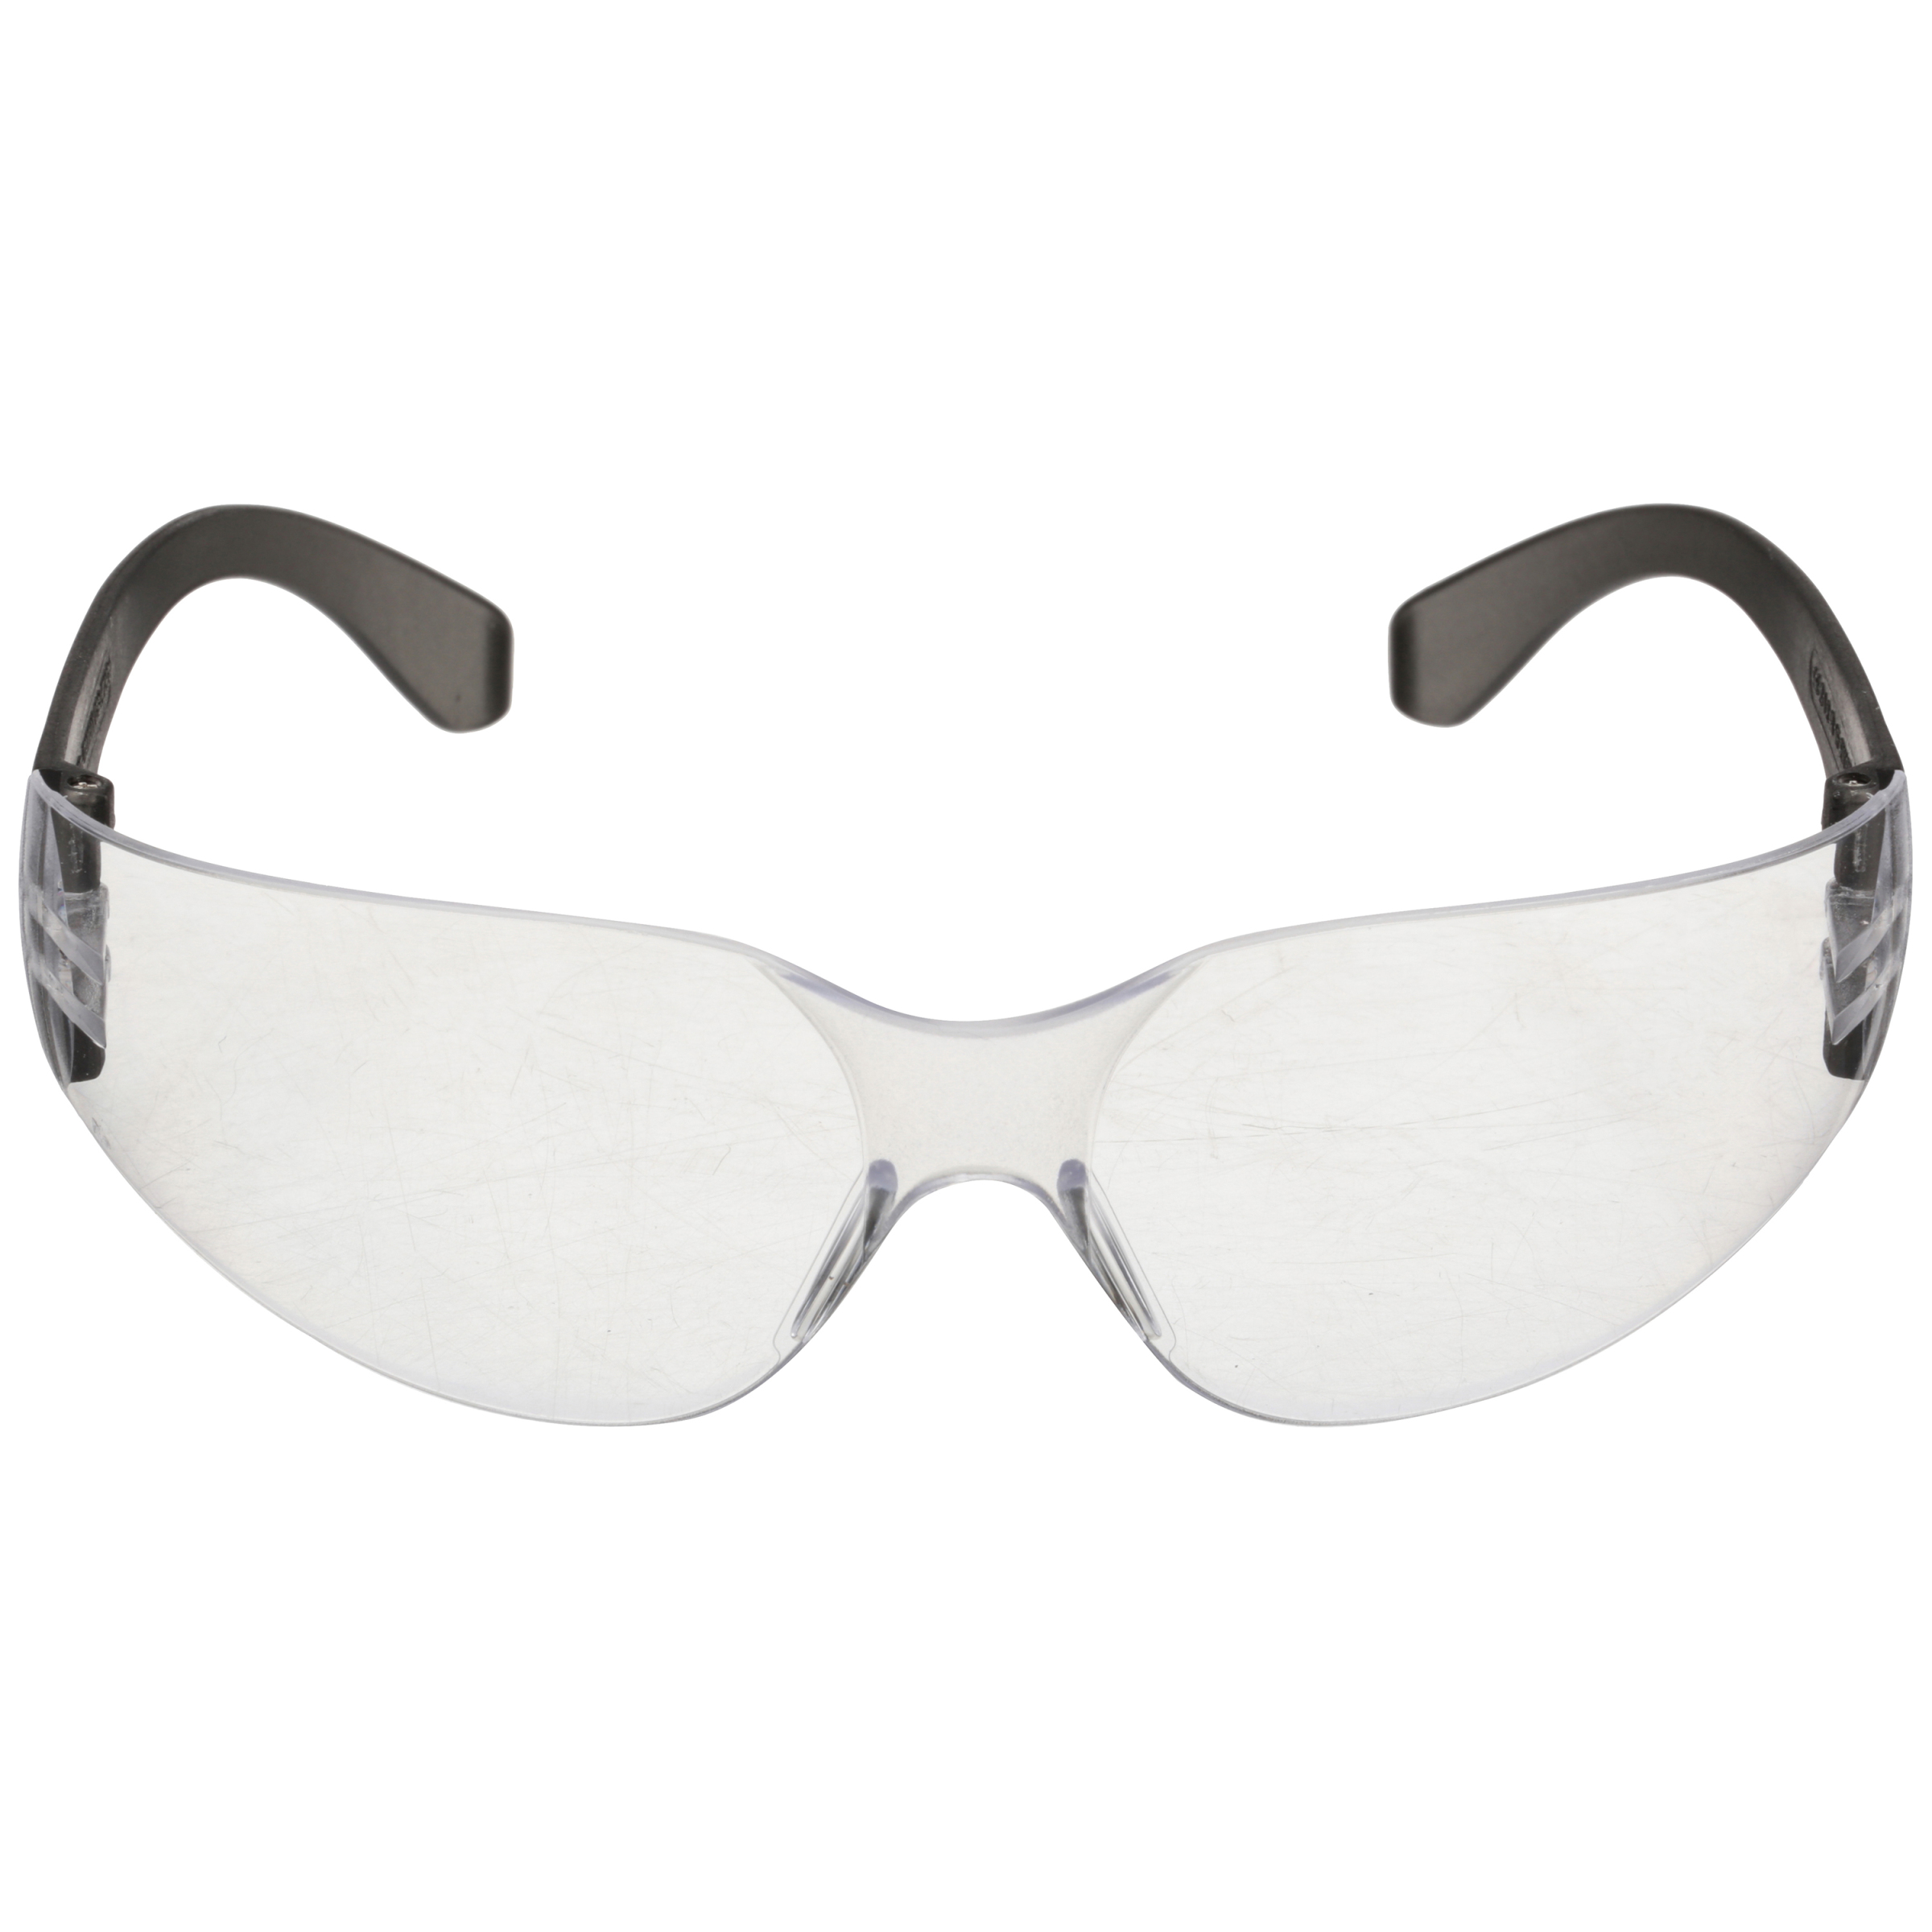 ef51298101c Crosman Shooting and Safety Glasses ANSI and CE standards 0475C -  Walmart.com